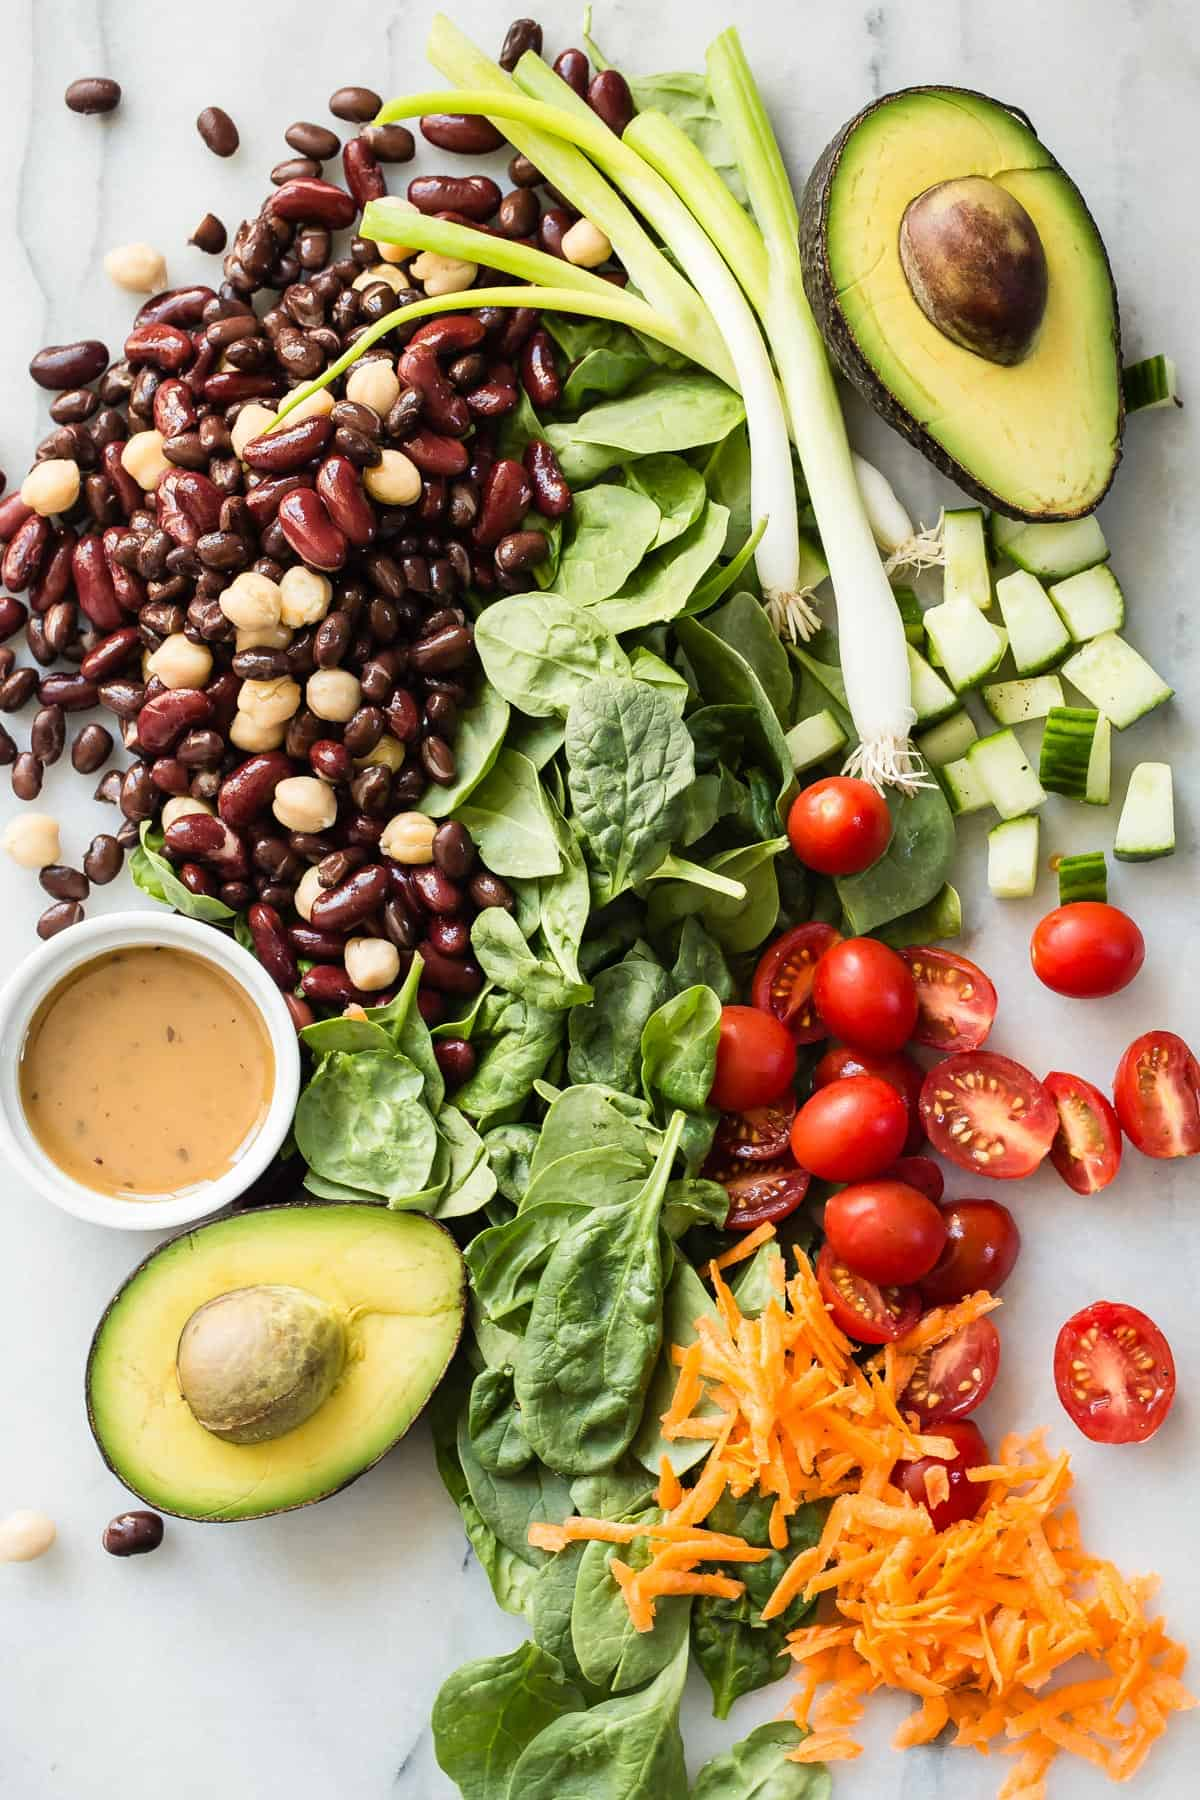 An awesome tasting Garden Bean Salad packed with three types of beans, spinach, avocado and dressed in an Asian style dressing.